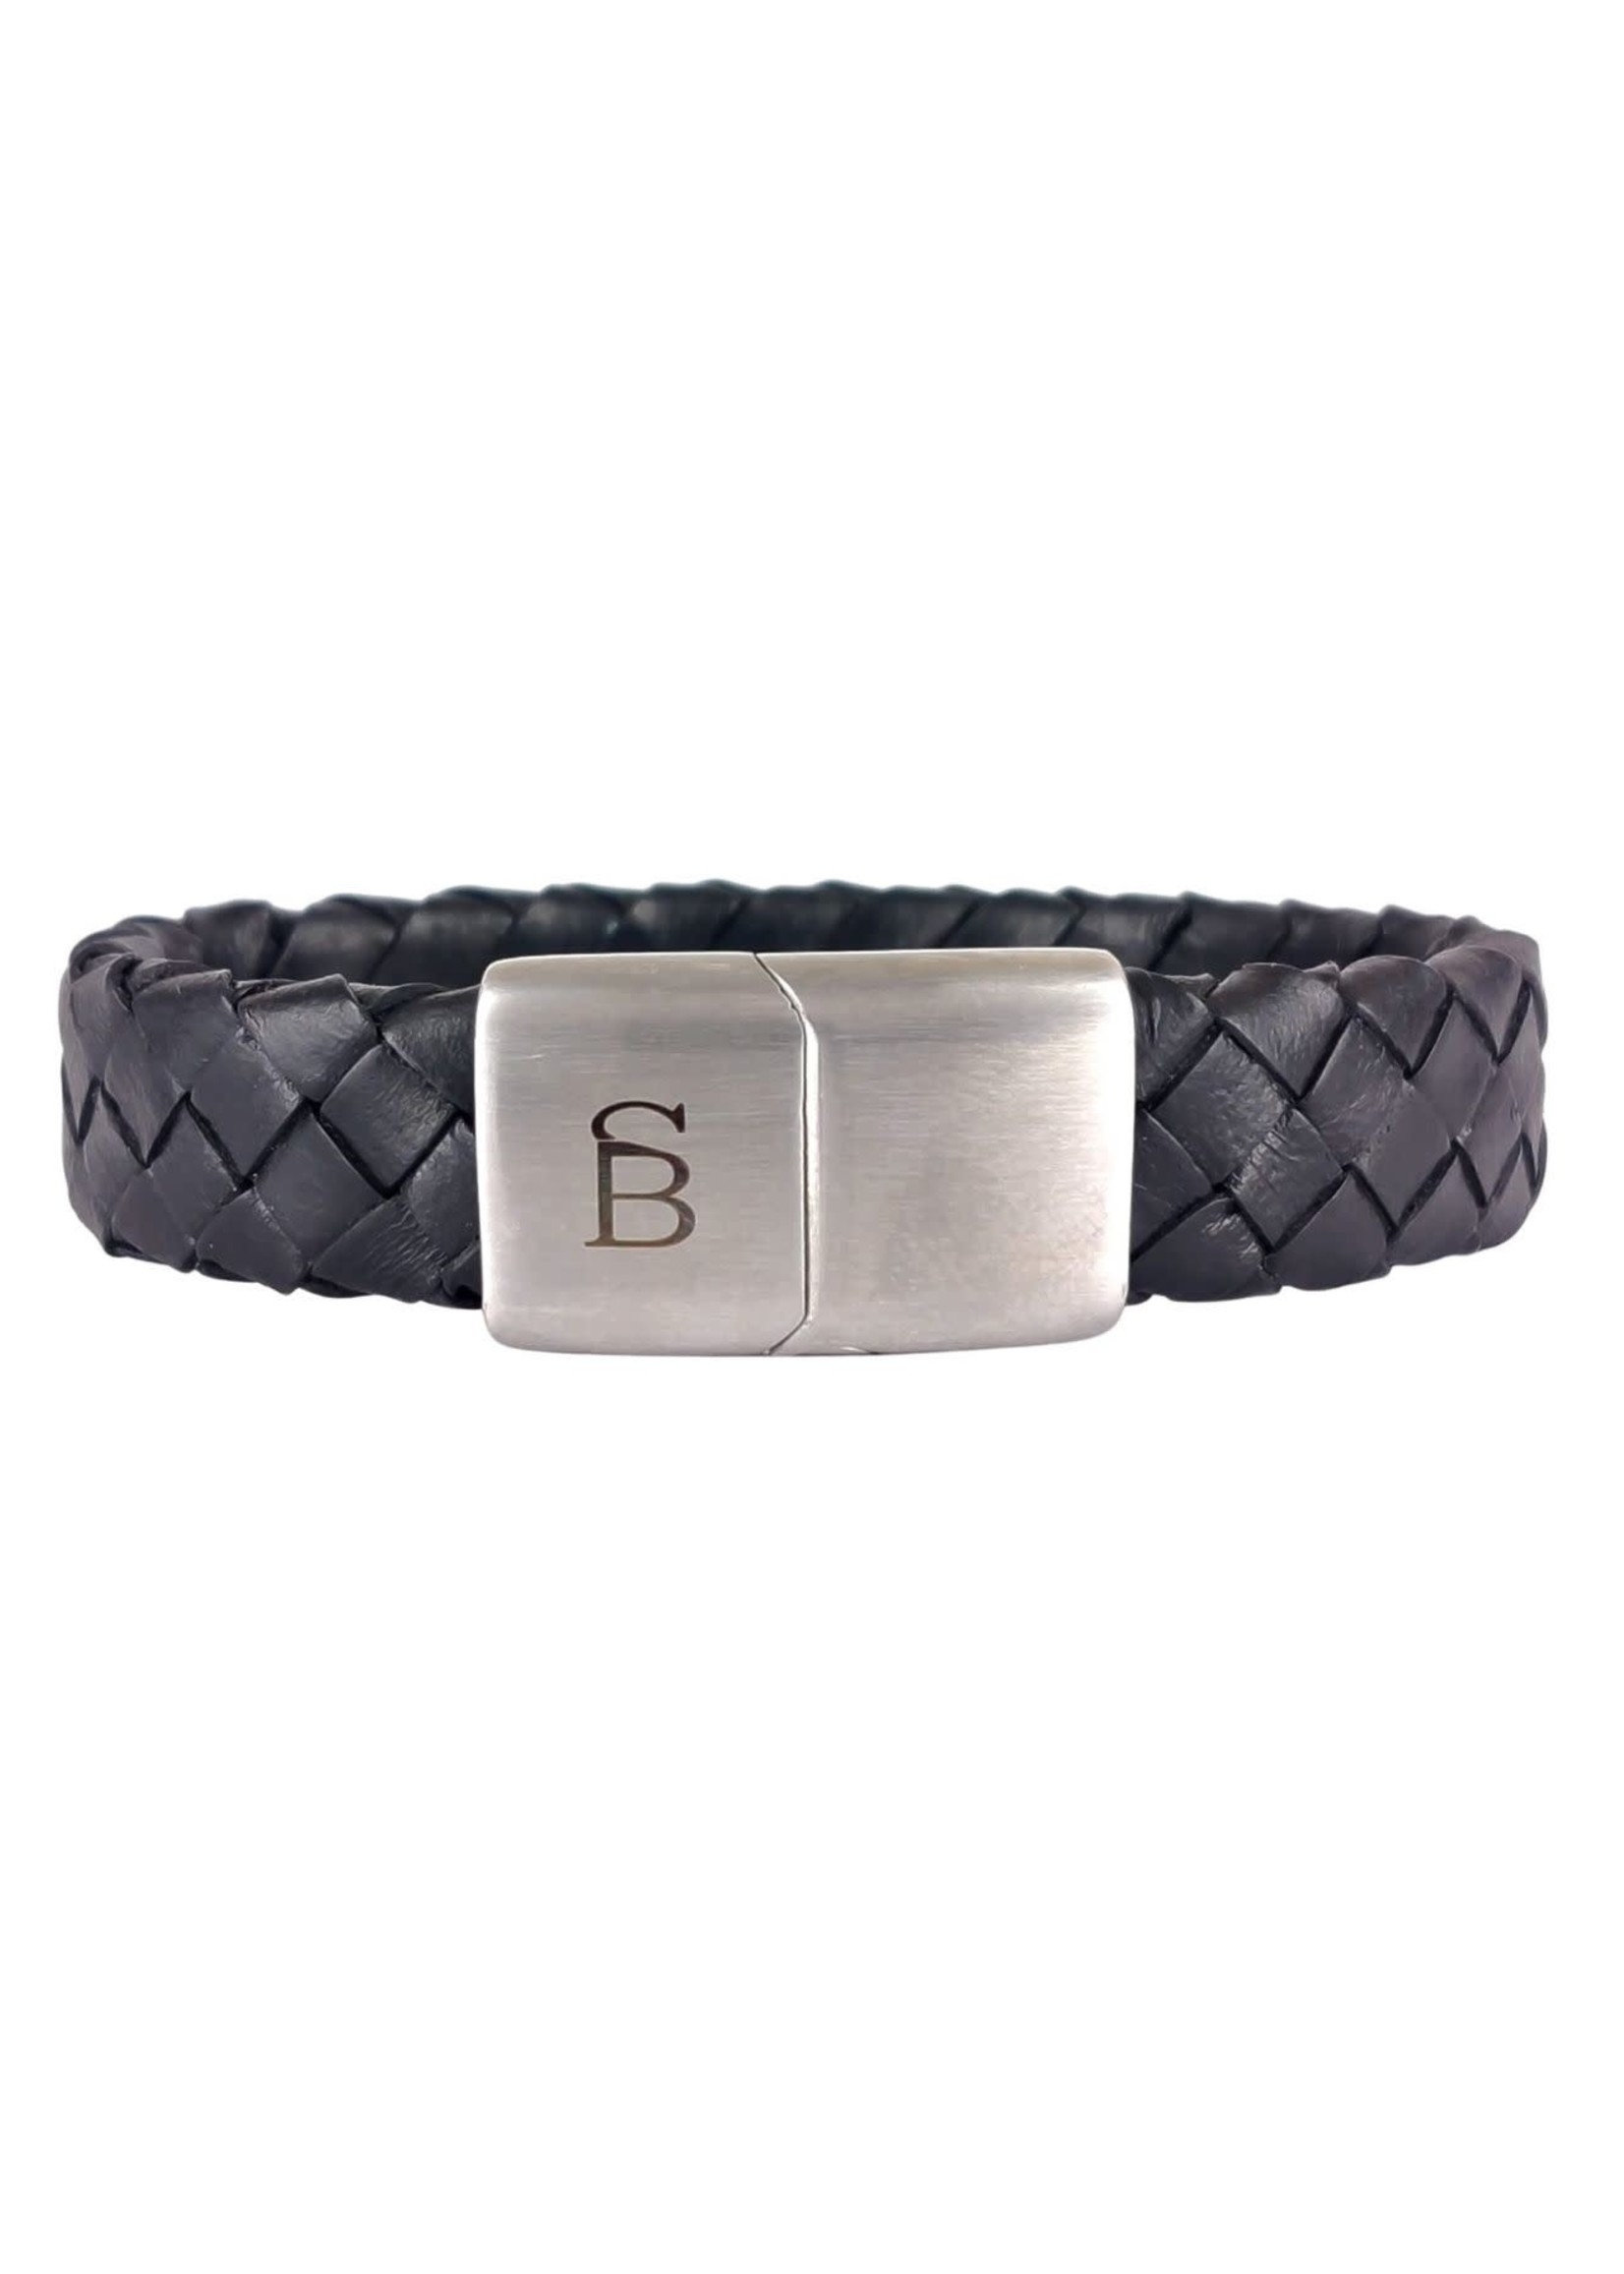 Steel & Barnett Leren Armband Preston | Matt Black | Steel&Barnett